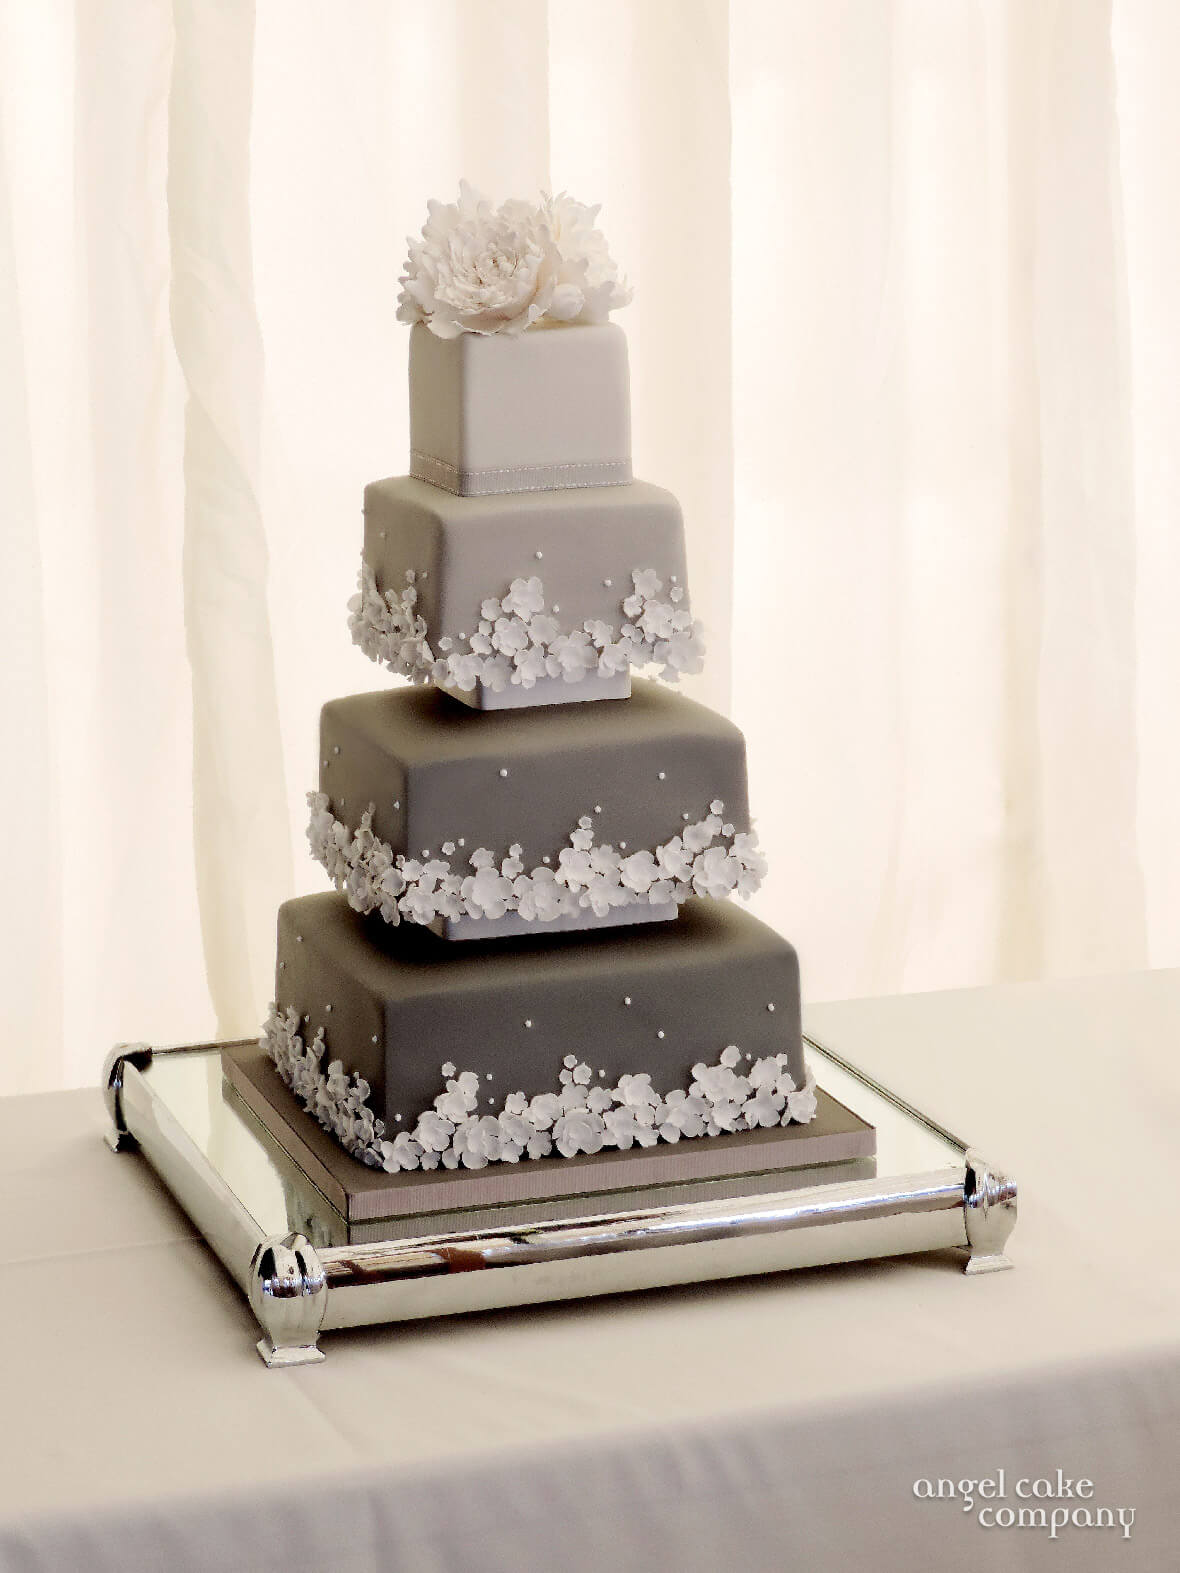 Four Tier Wedding Cake Decorated With Graduating Shades Of Grey Icing And White Flowers Not Your Everyday Choice Colours For A